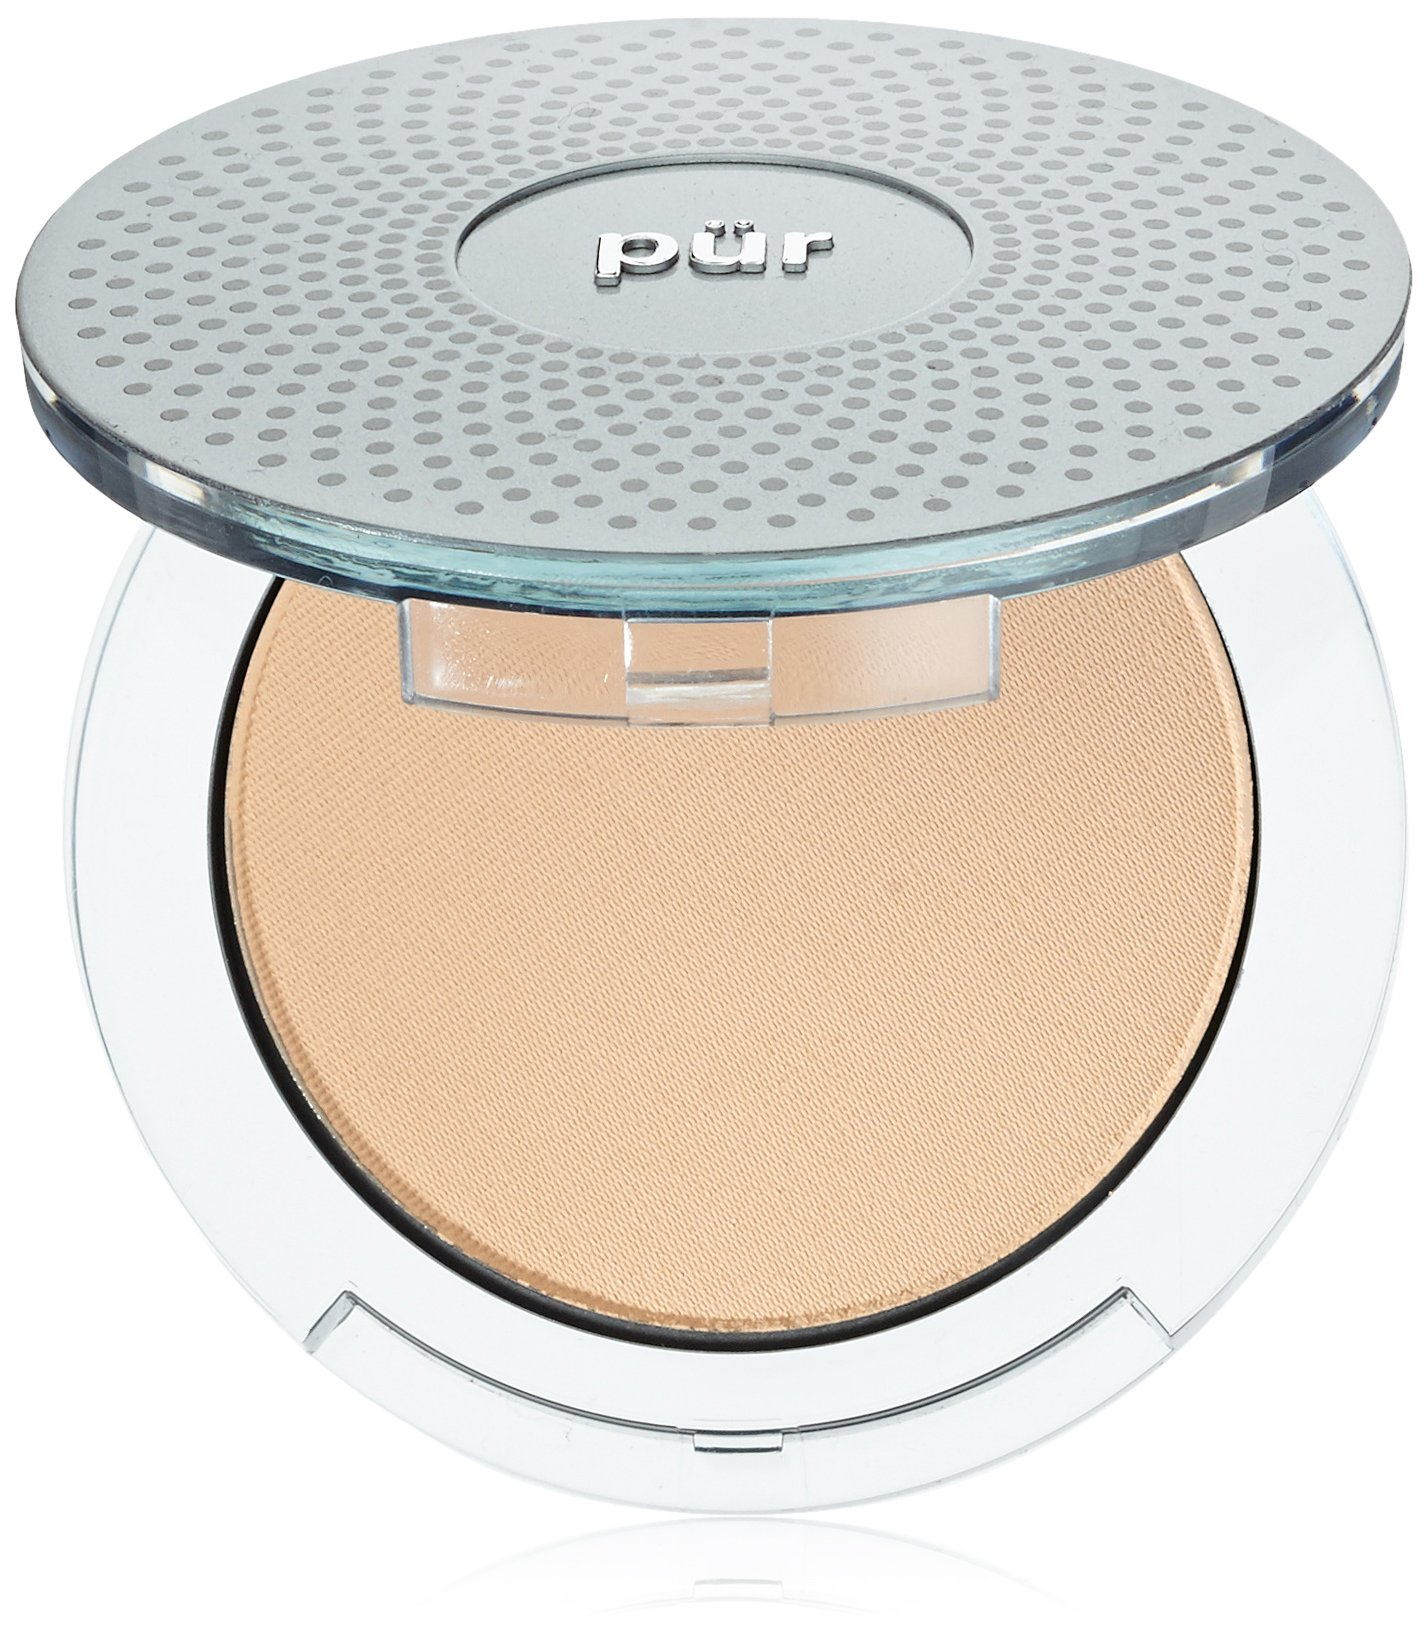 Pur Minerals 4-In-1 Pressed Mineral Makeup, Porcelain, 0.28 Ounce